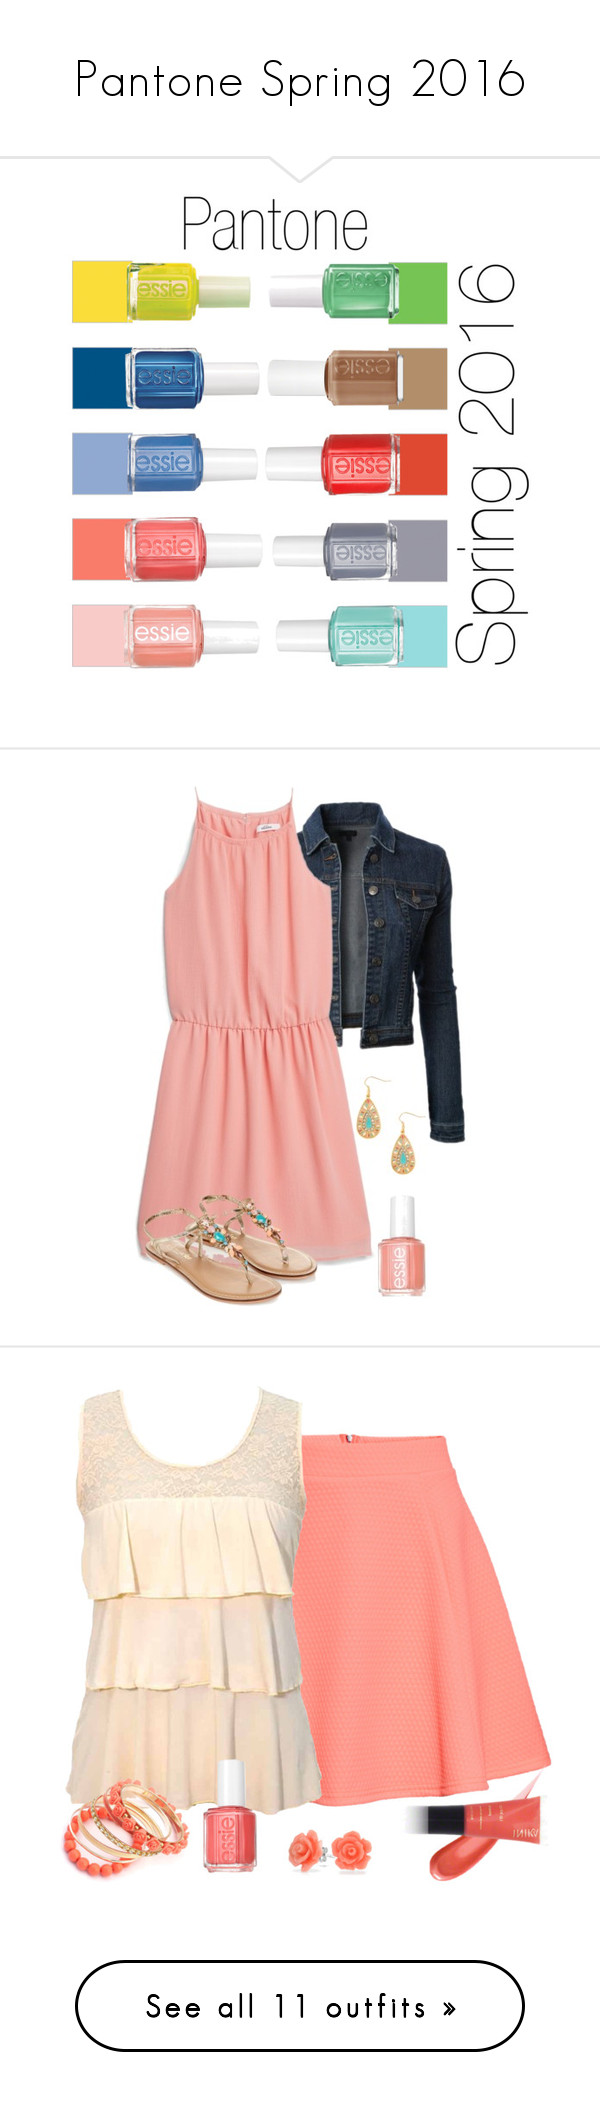 Pantone Spring 2016 by mary-grace-see on Polyvore featuring polyvore, fashion, style, Essie, clothing, pantone, spring2016, LE3NO, MANGO, Monsoon, rosequartz, H&M, Ruby Rocks, INIKA, Bling Jewelry, peachecho, Shoshanna, Swarovski, serenity, Amanda Uprichard, Carolee, Blue, snorkel, SnorkelBlue, MaxMara, Marc by Marc Jacobs, INC International Concepts, Nina, buttercup, Christopher Kane, maurices, shell, limpetshell, limpet, Smith & Cult, MICHAEL Michael Kors, Hush Puppies, gray, lilac…